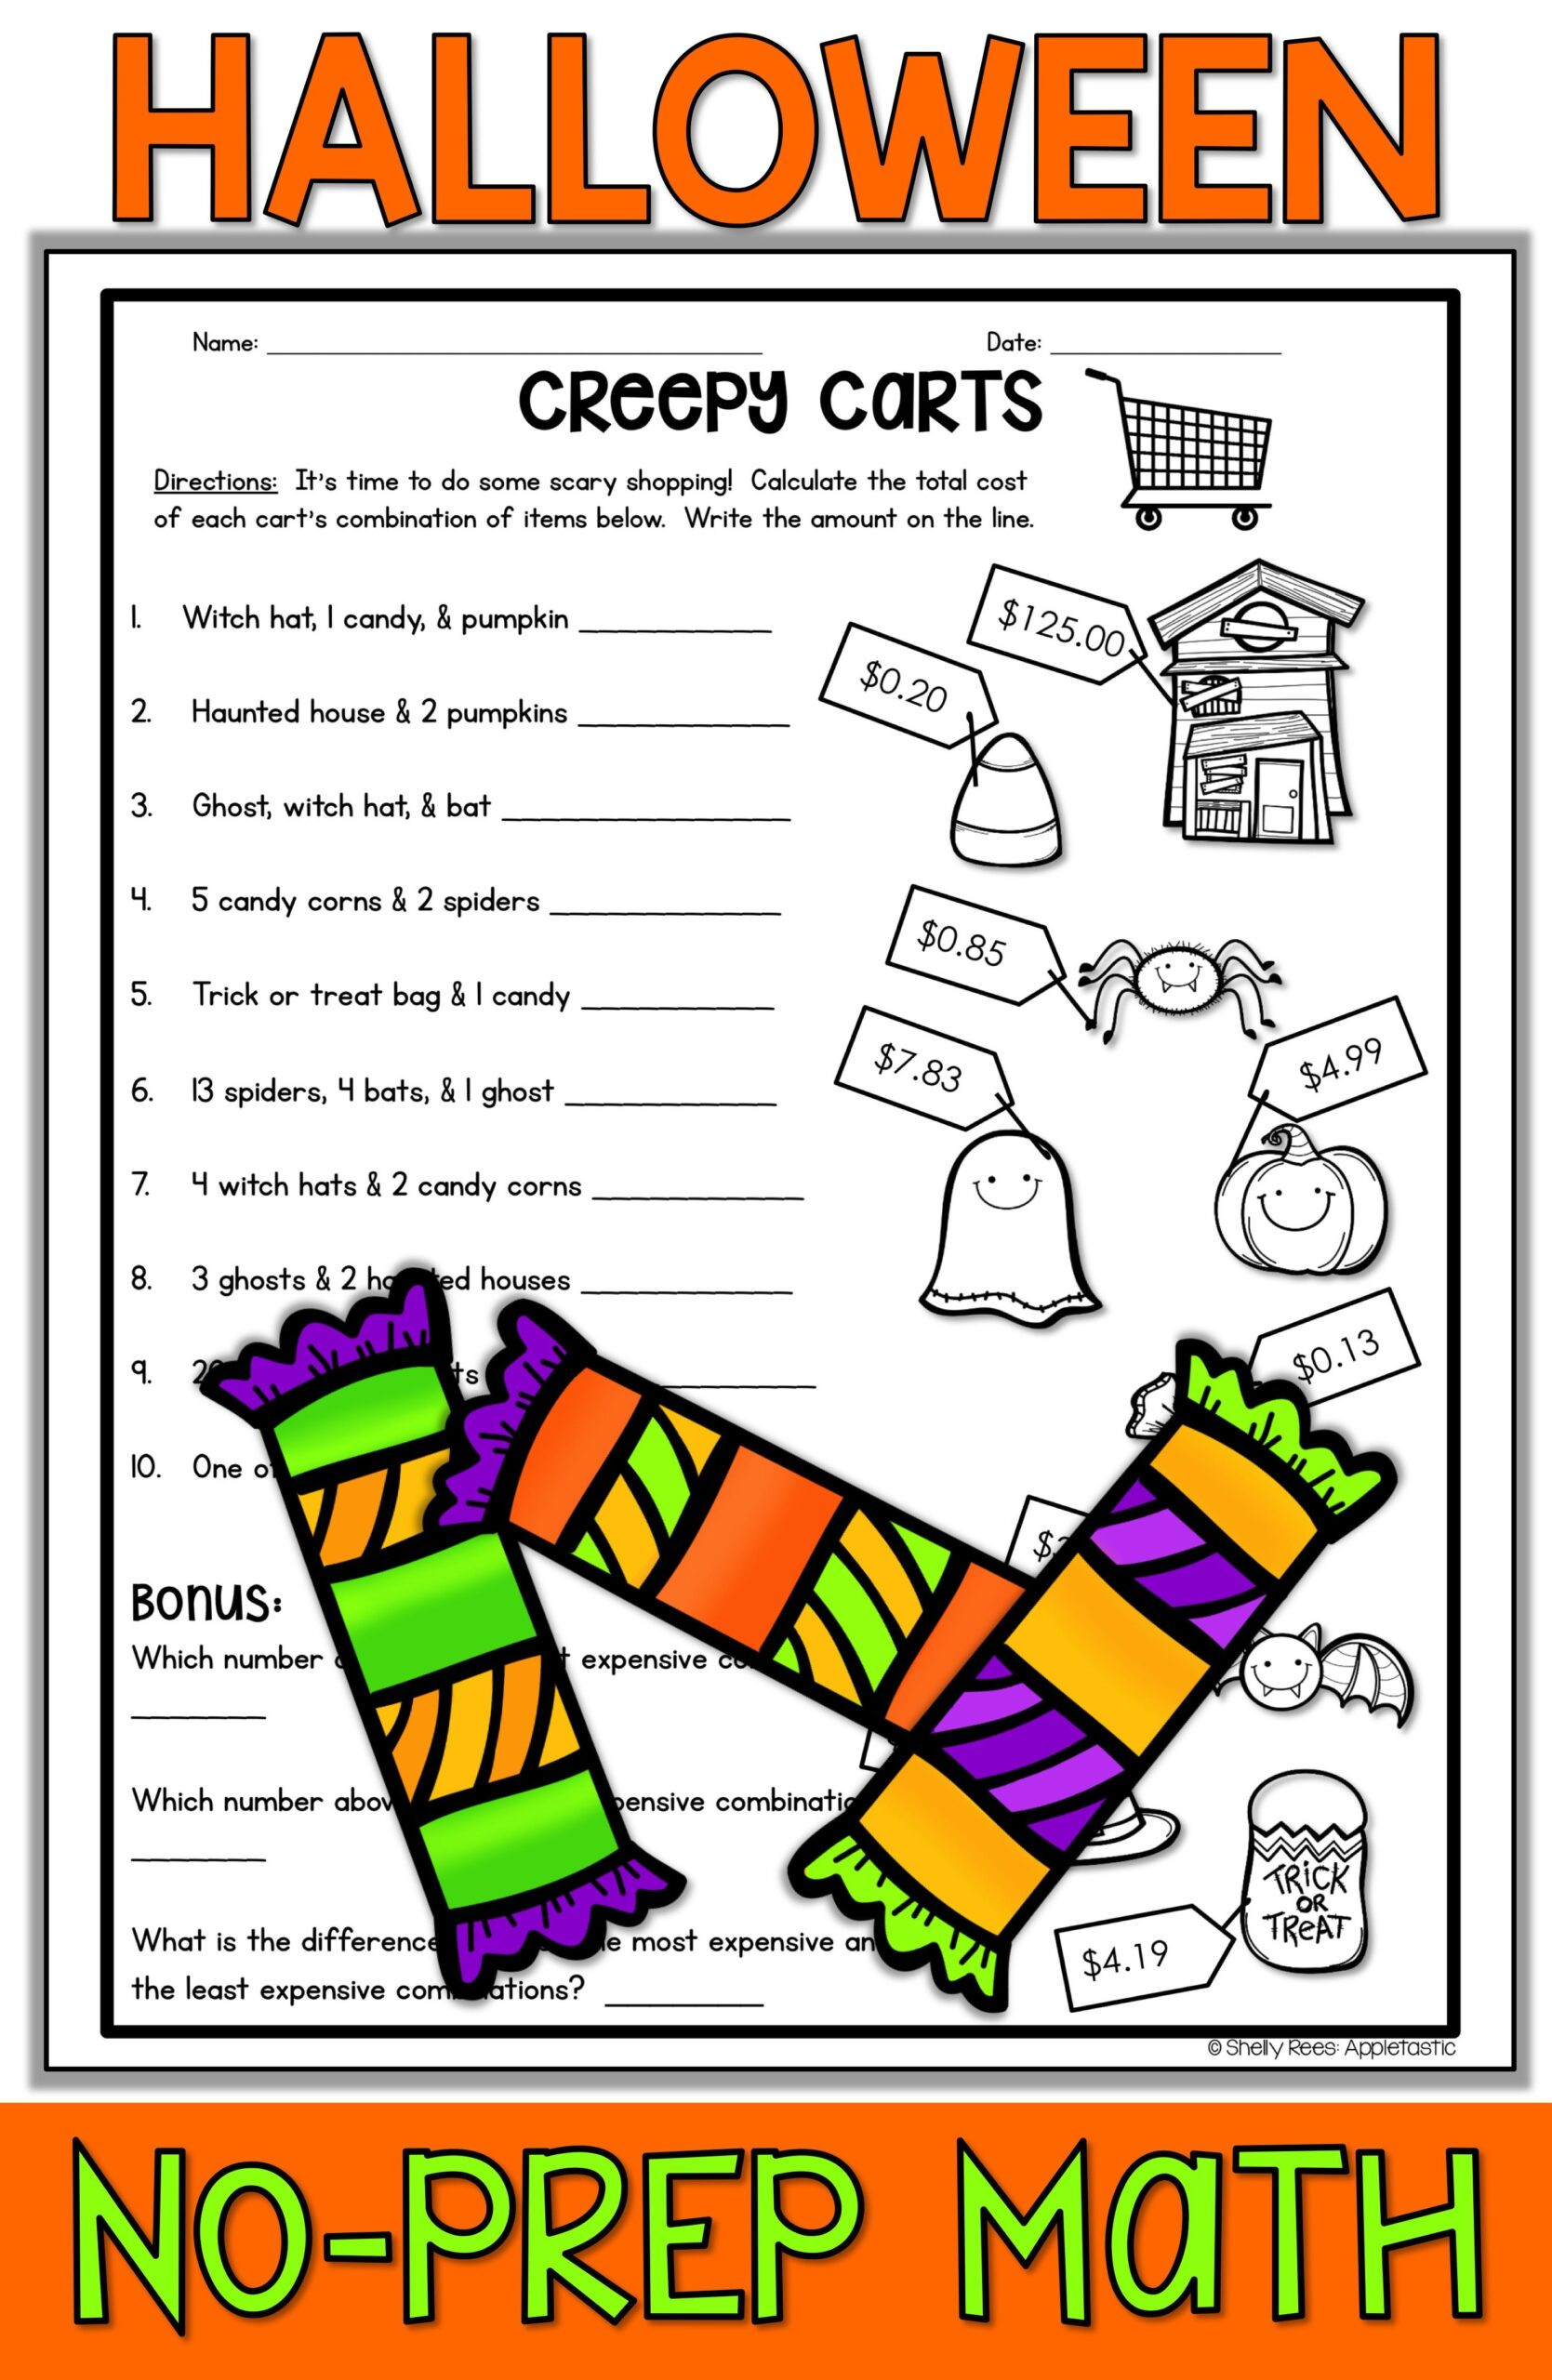 Halloween Math Worksheets Middle School Halloween Math Worksheets Free Middle School Plane and solid